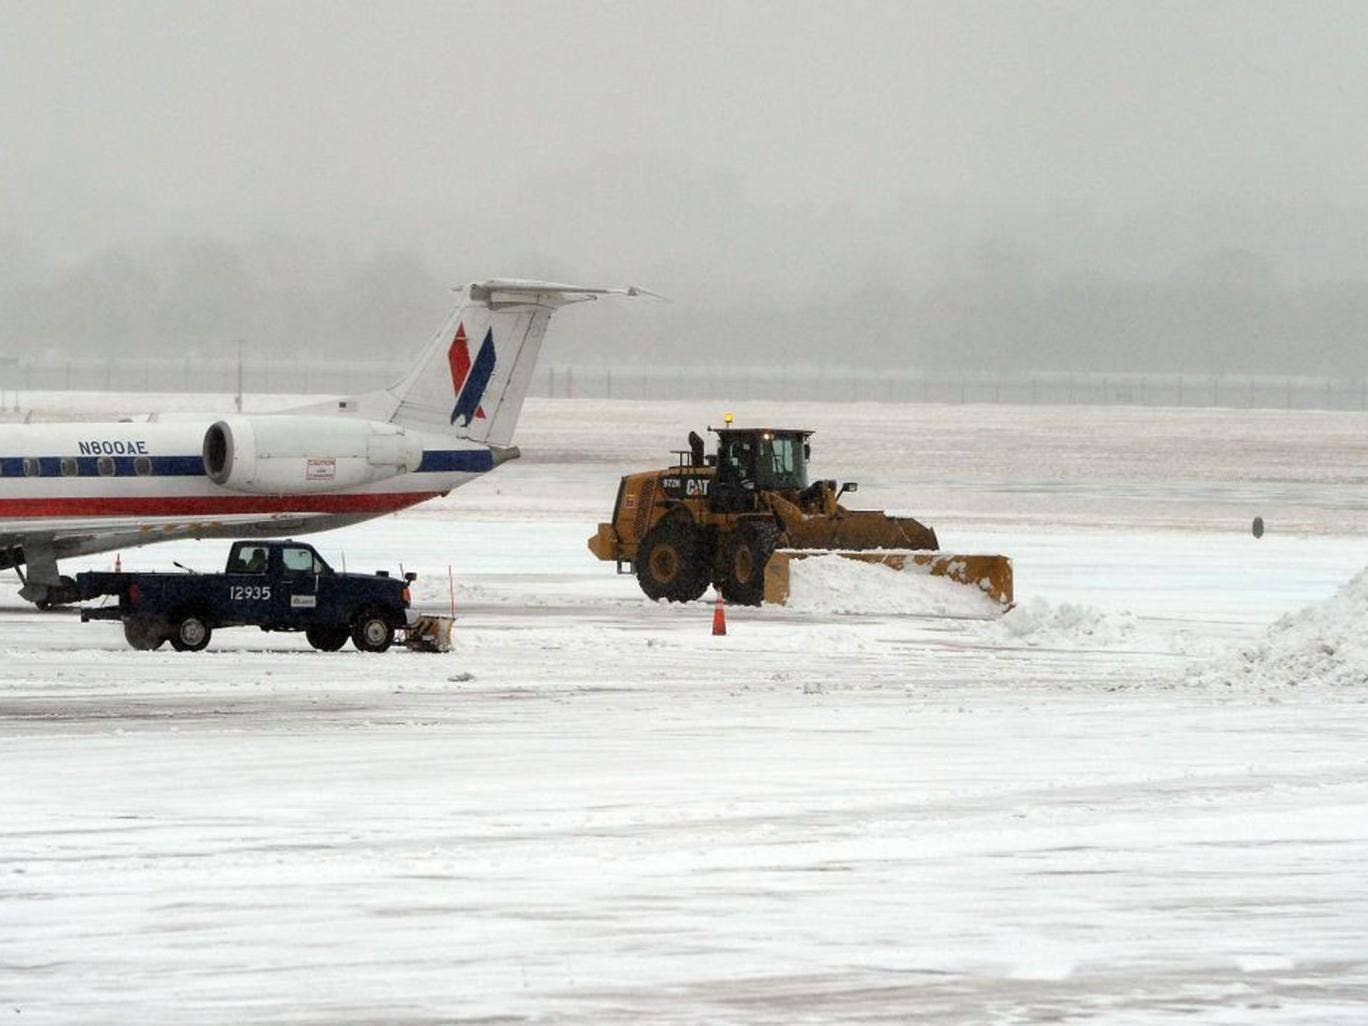 Workers use snowplows to clean a tarmac at the Reagan National Airport during a snow storm in Washington, DC